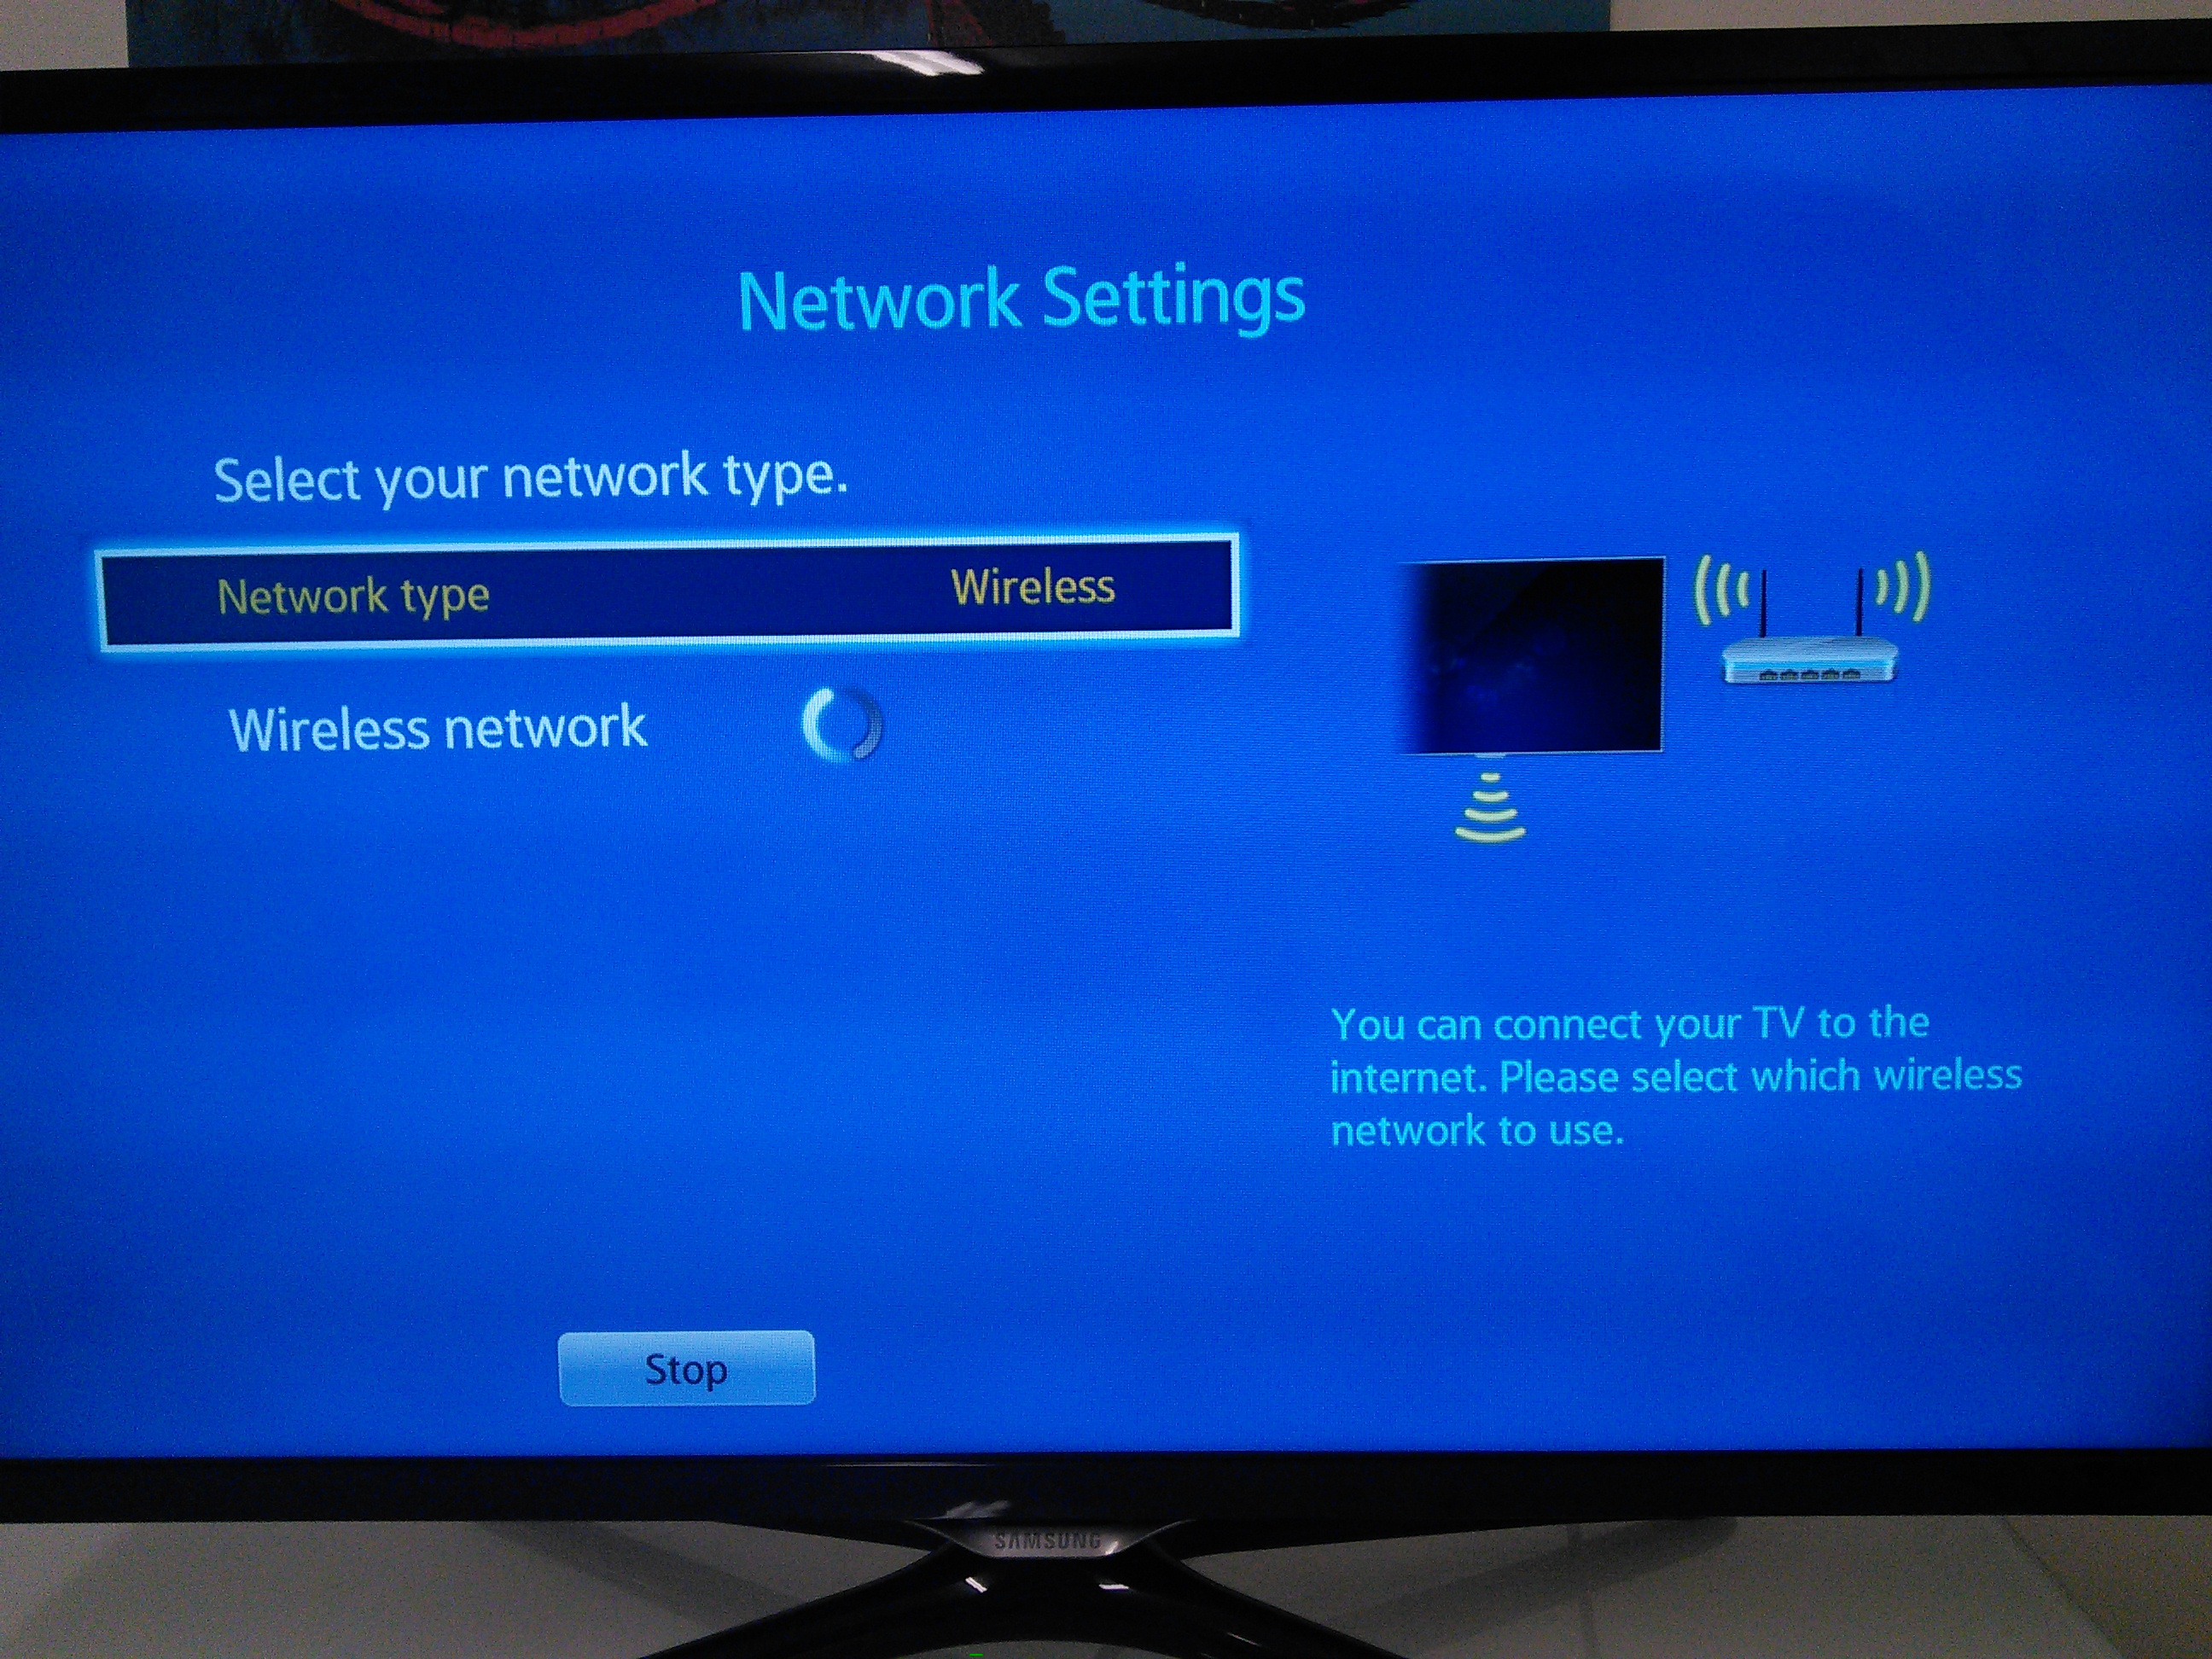 how to connect tv to internet wifi